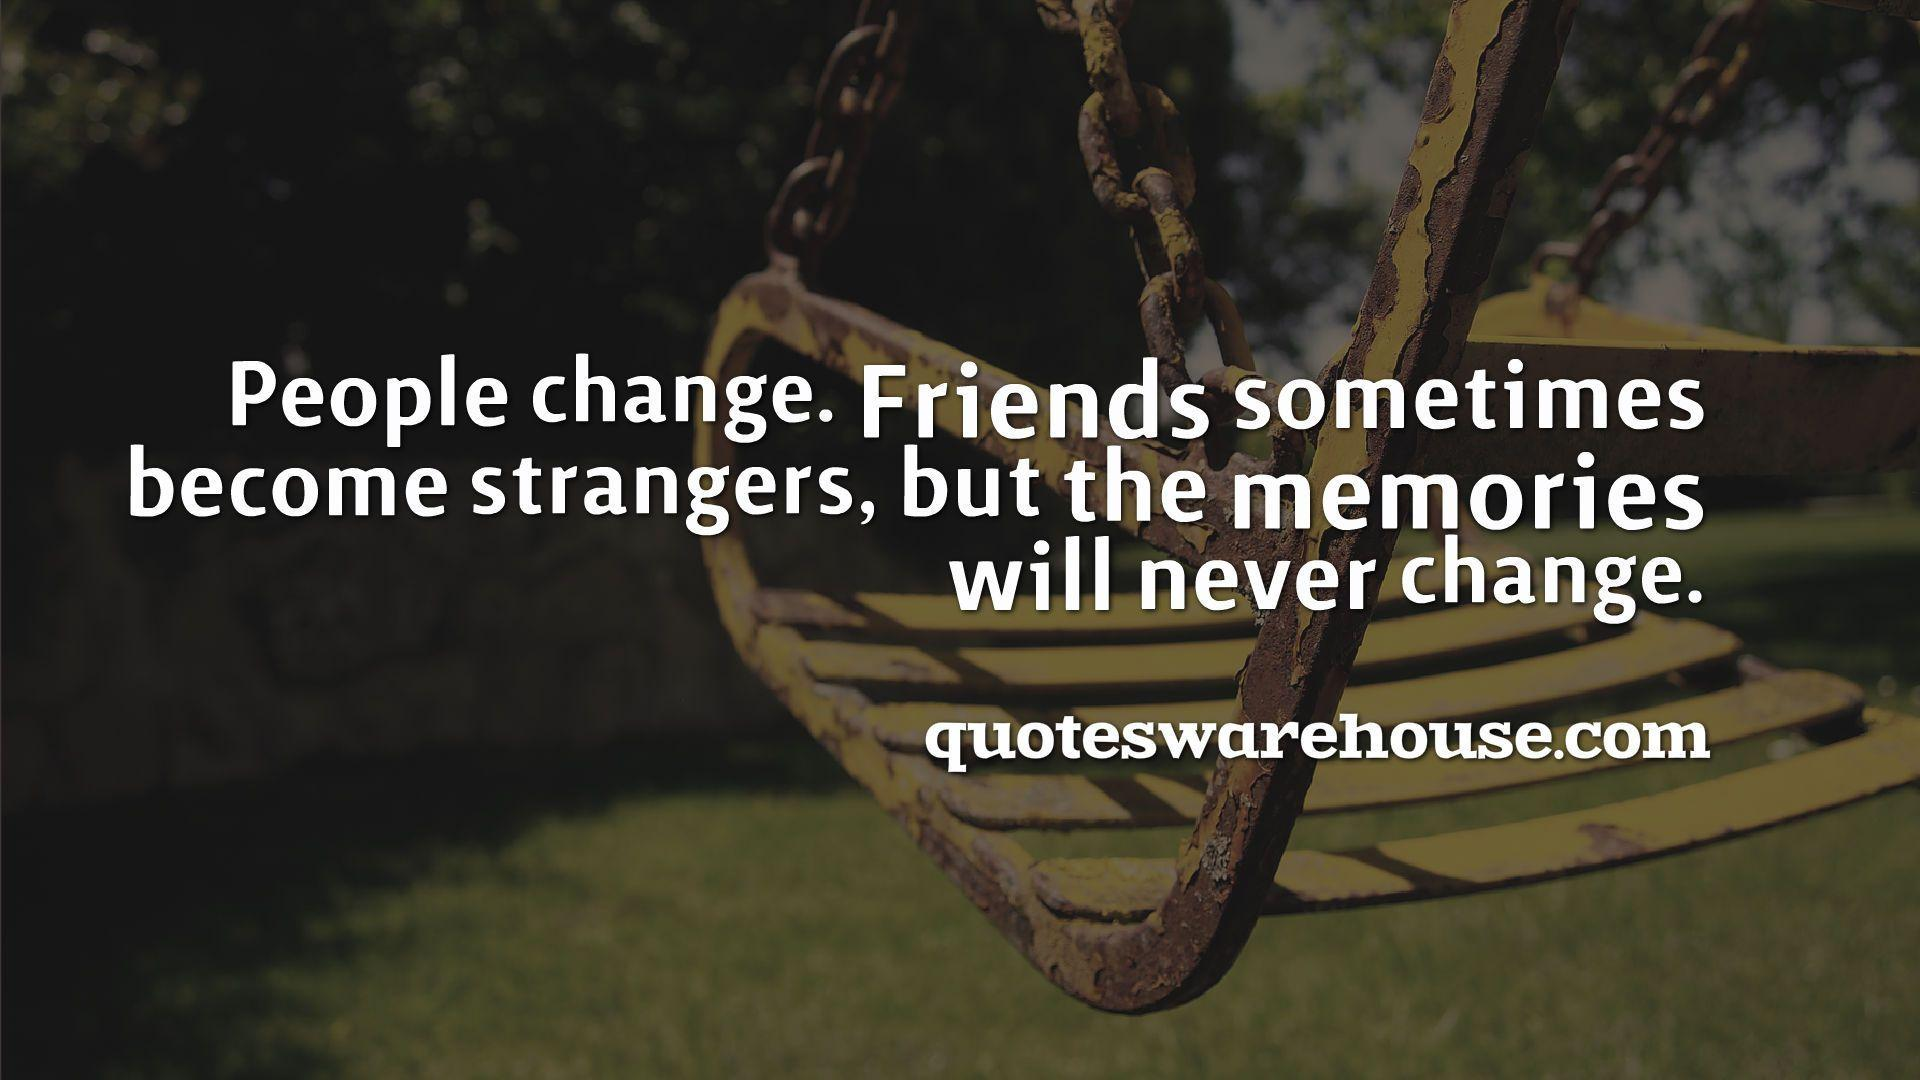 Broken Friendship Quotes Wallpapers - Wallpaper Cave